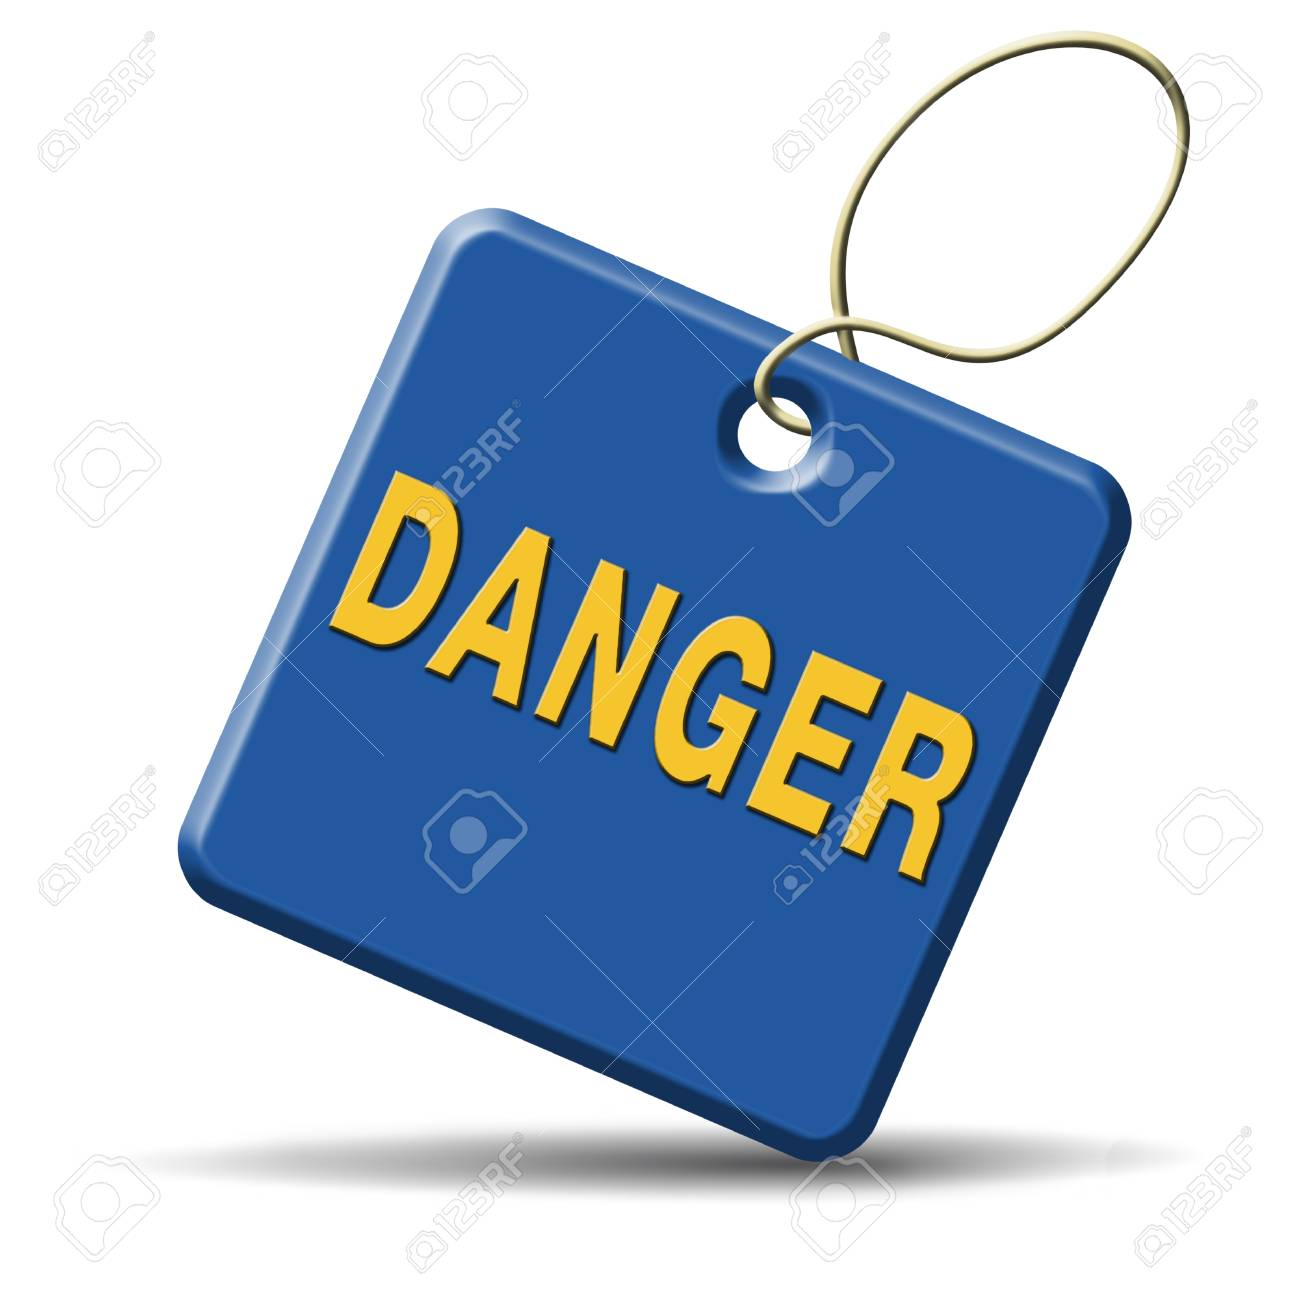 danger icon or dangerous sign Stock Photo - 22822181